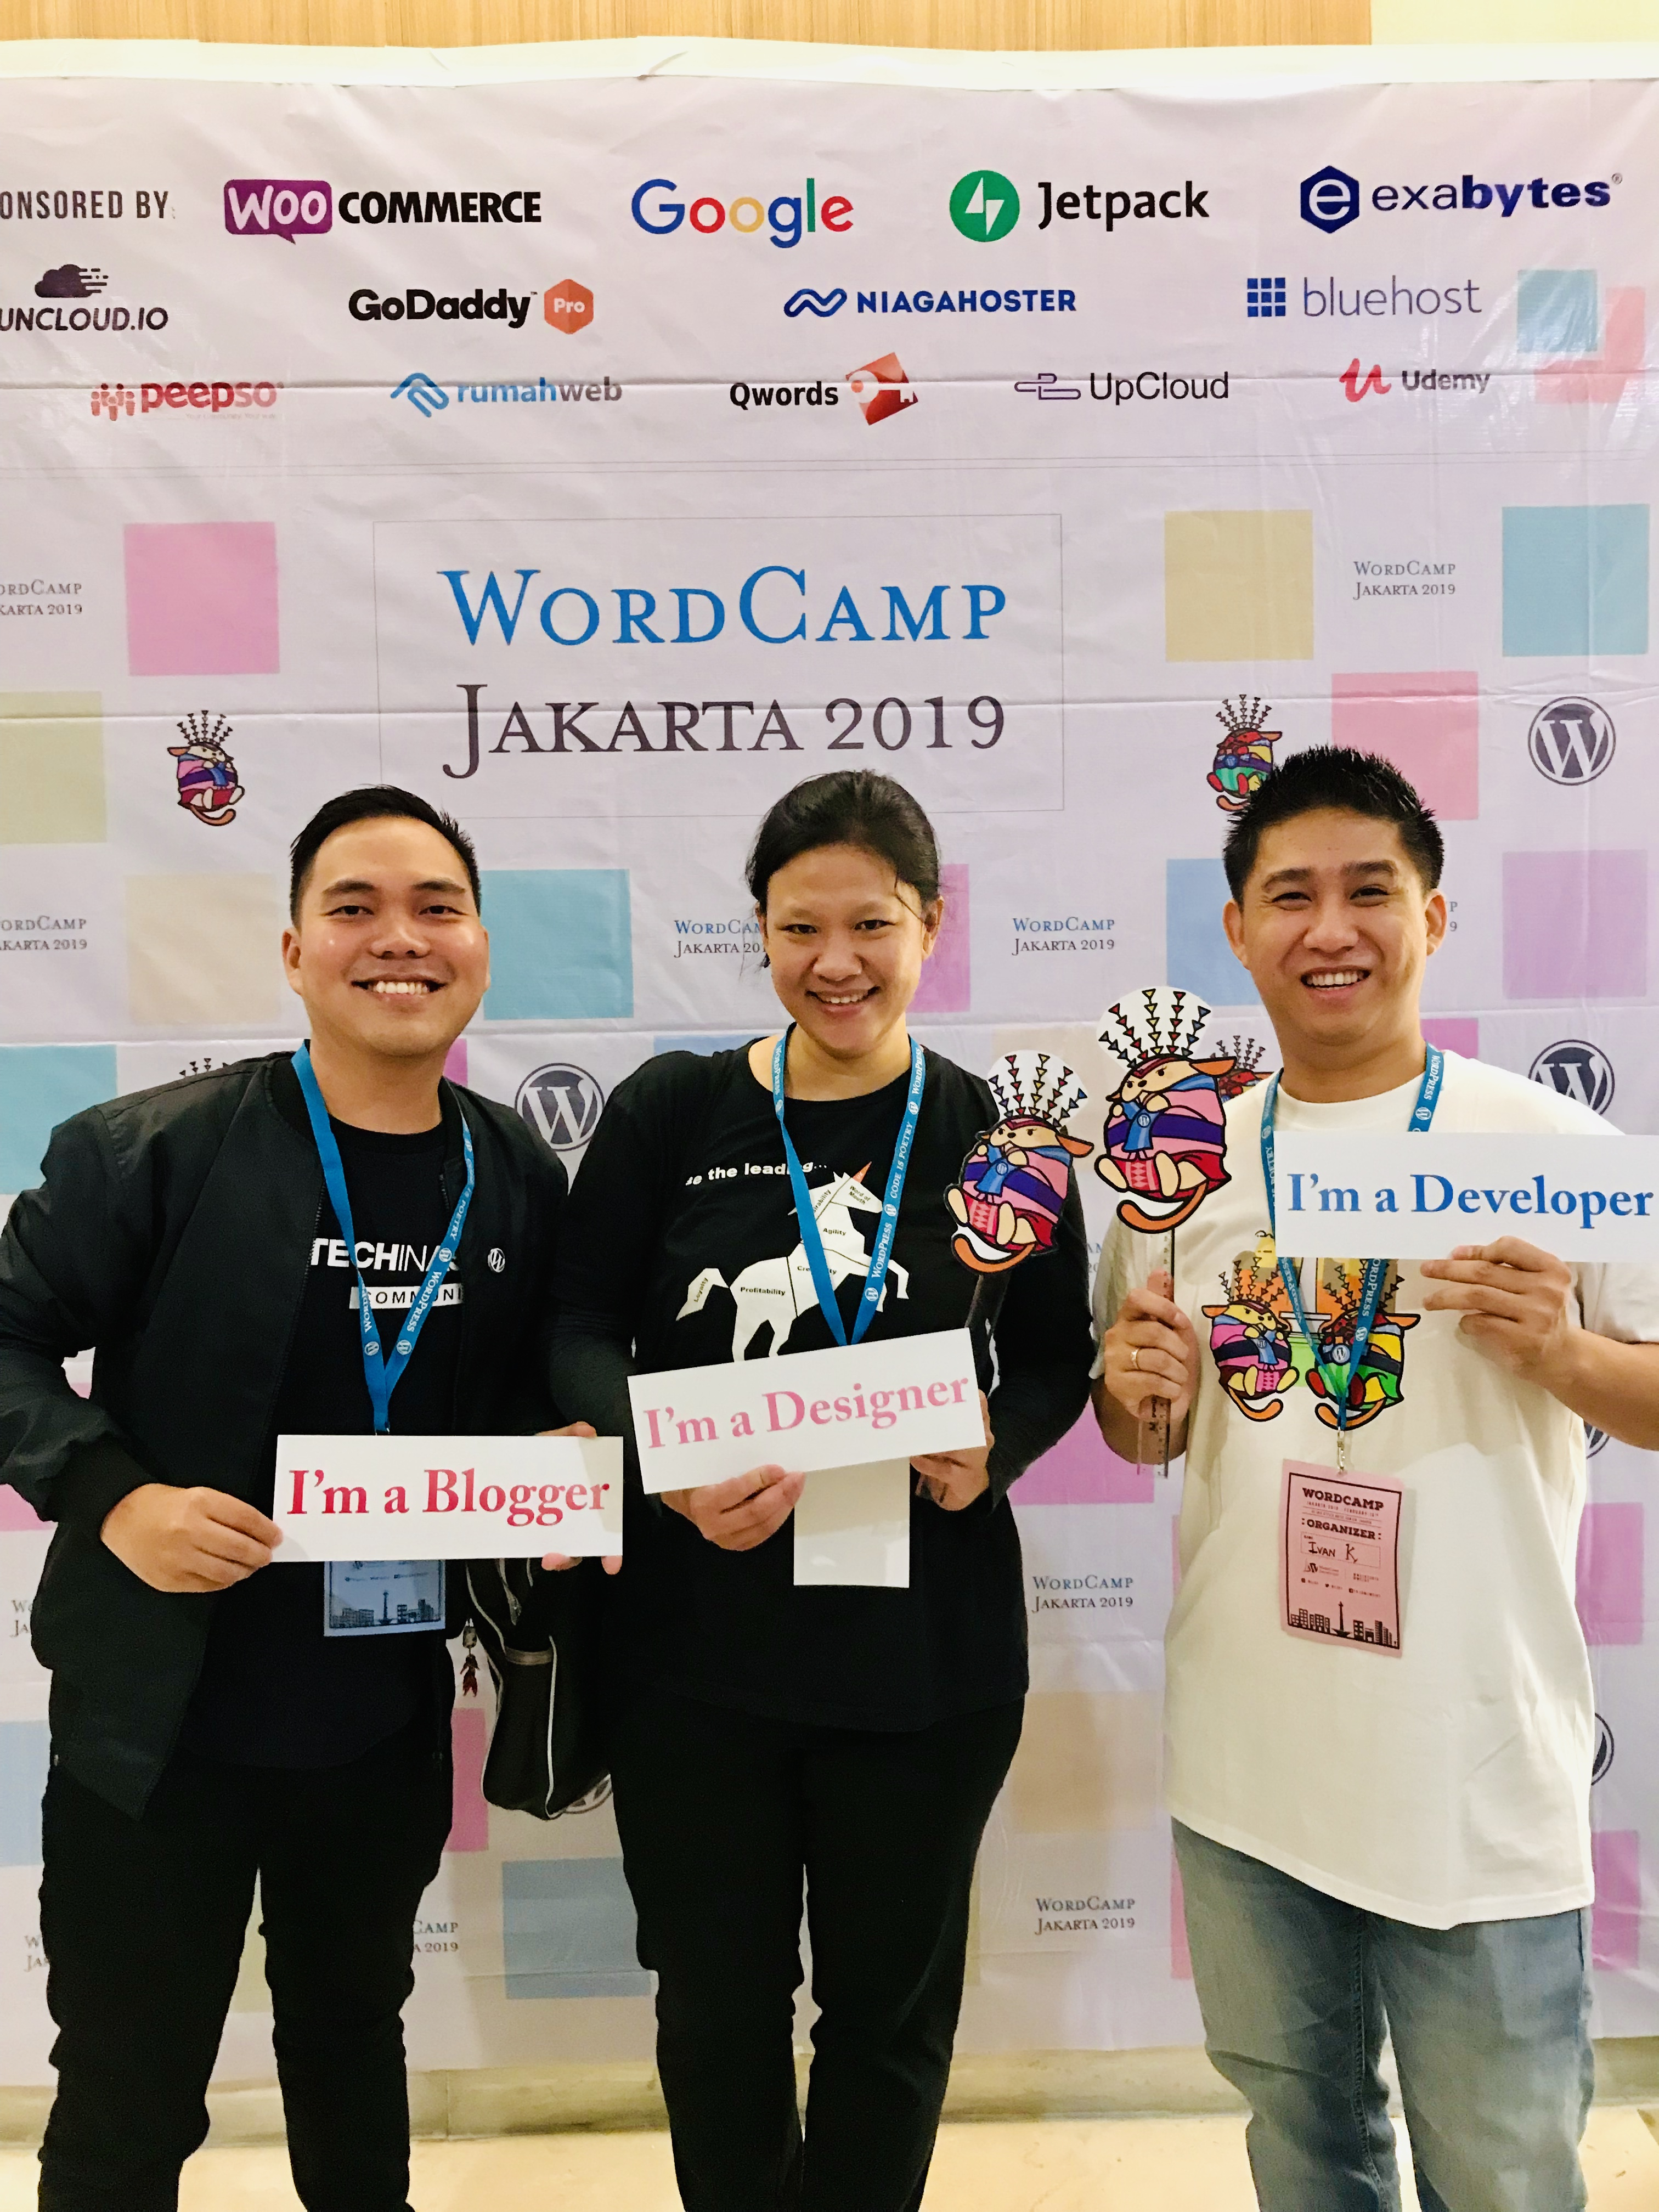 5 Reasons Why You Should Go to WordCamp Jakarta